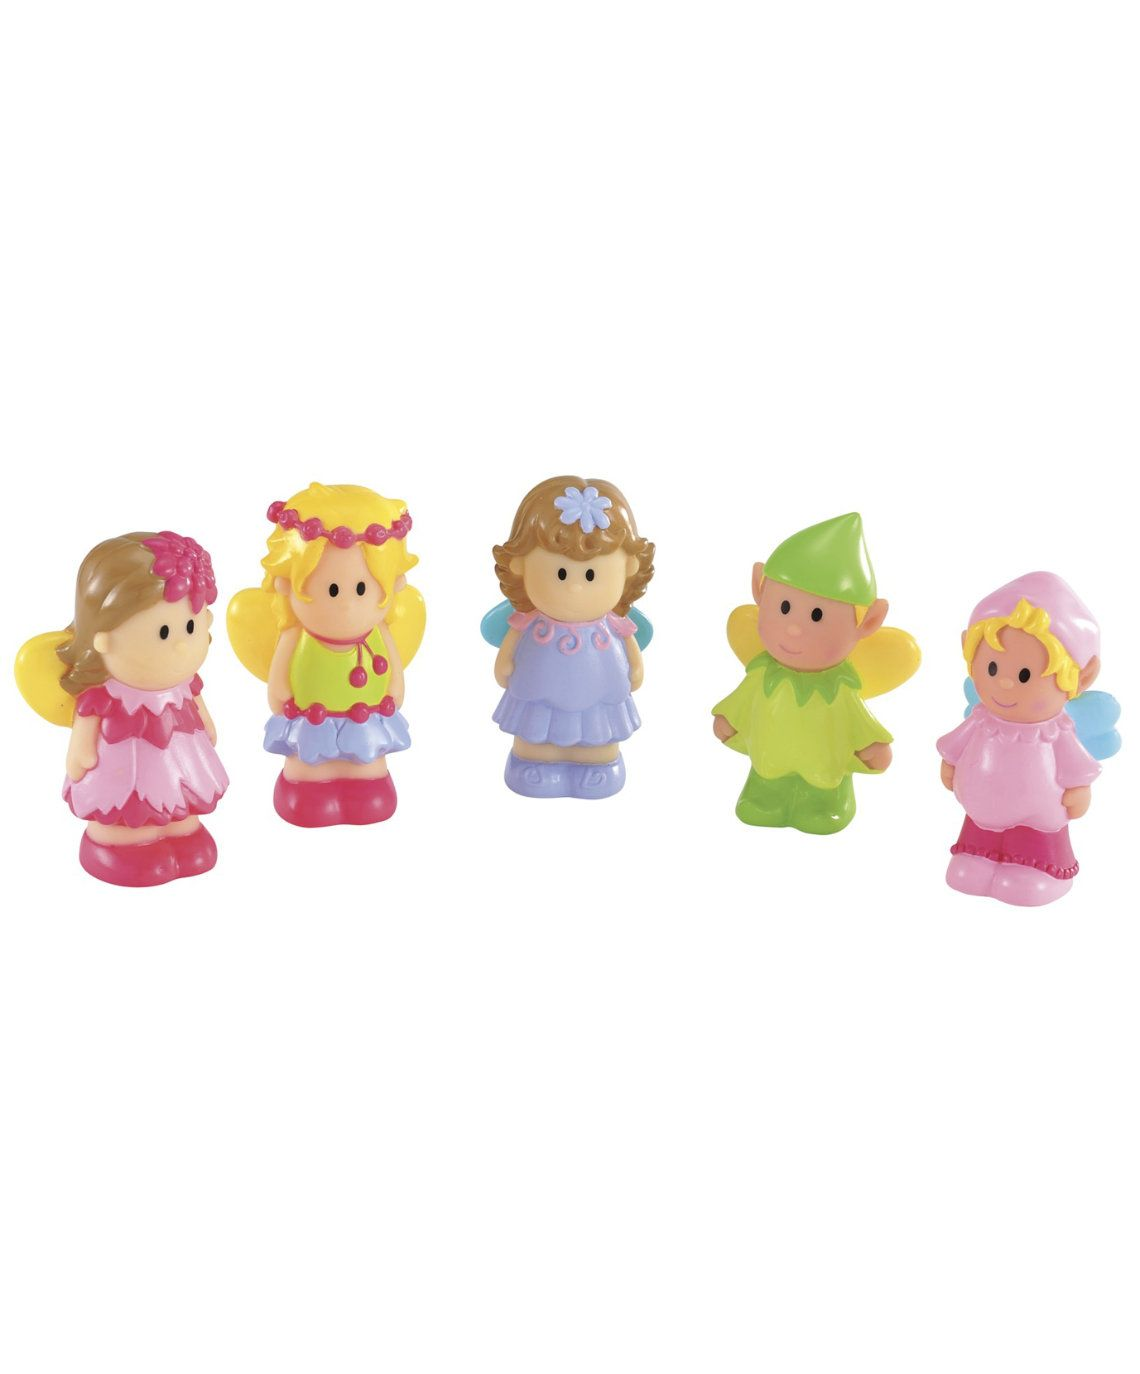 Happyland Fairy Figures | Early learning, Toys shop and Fairy